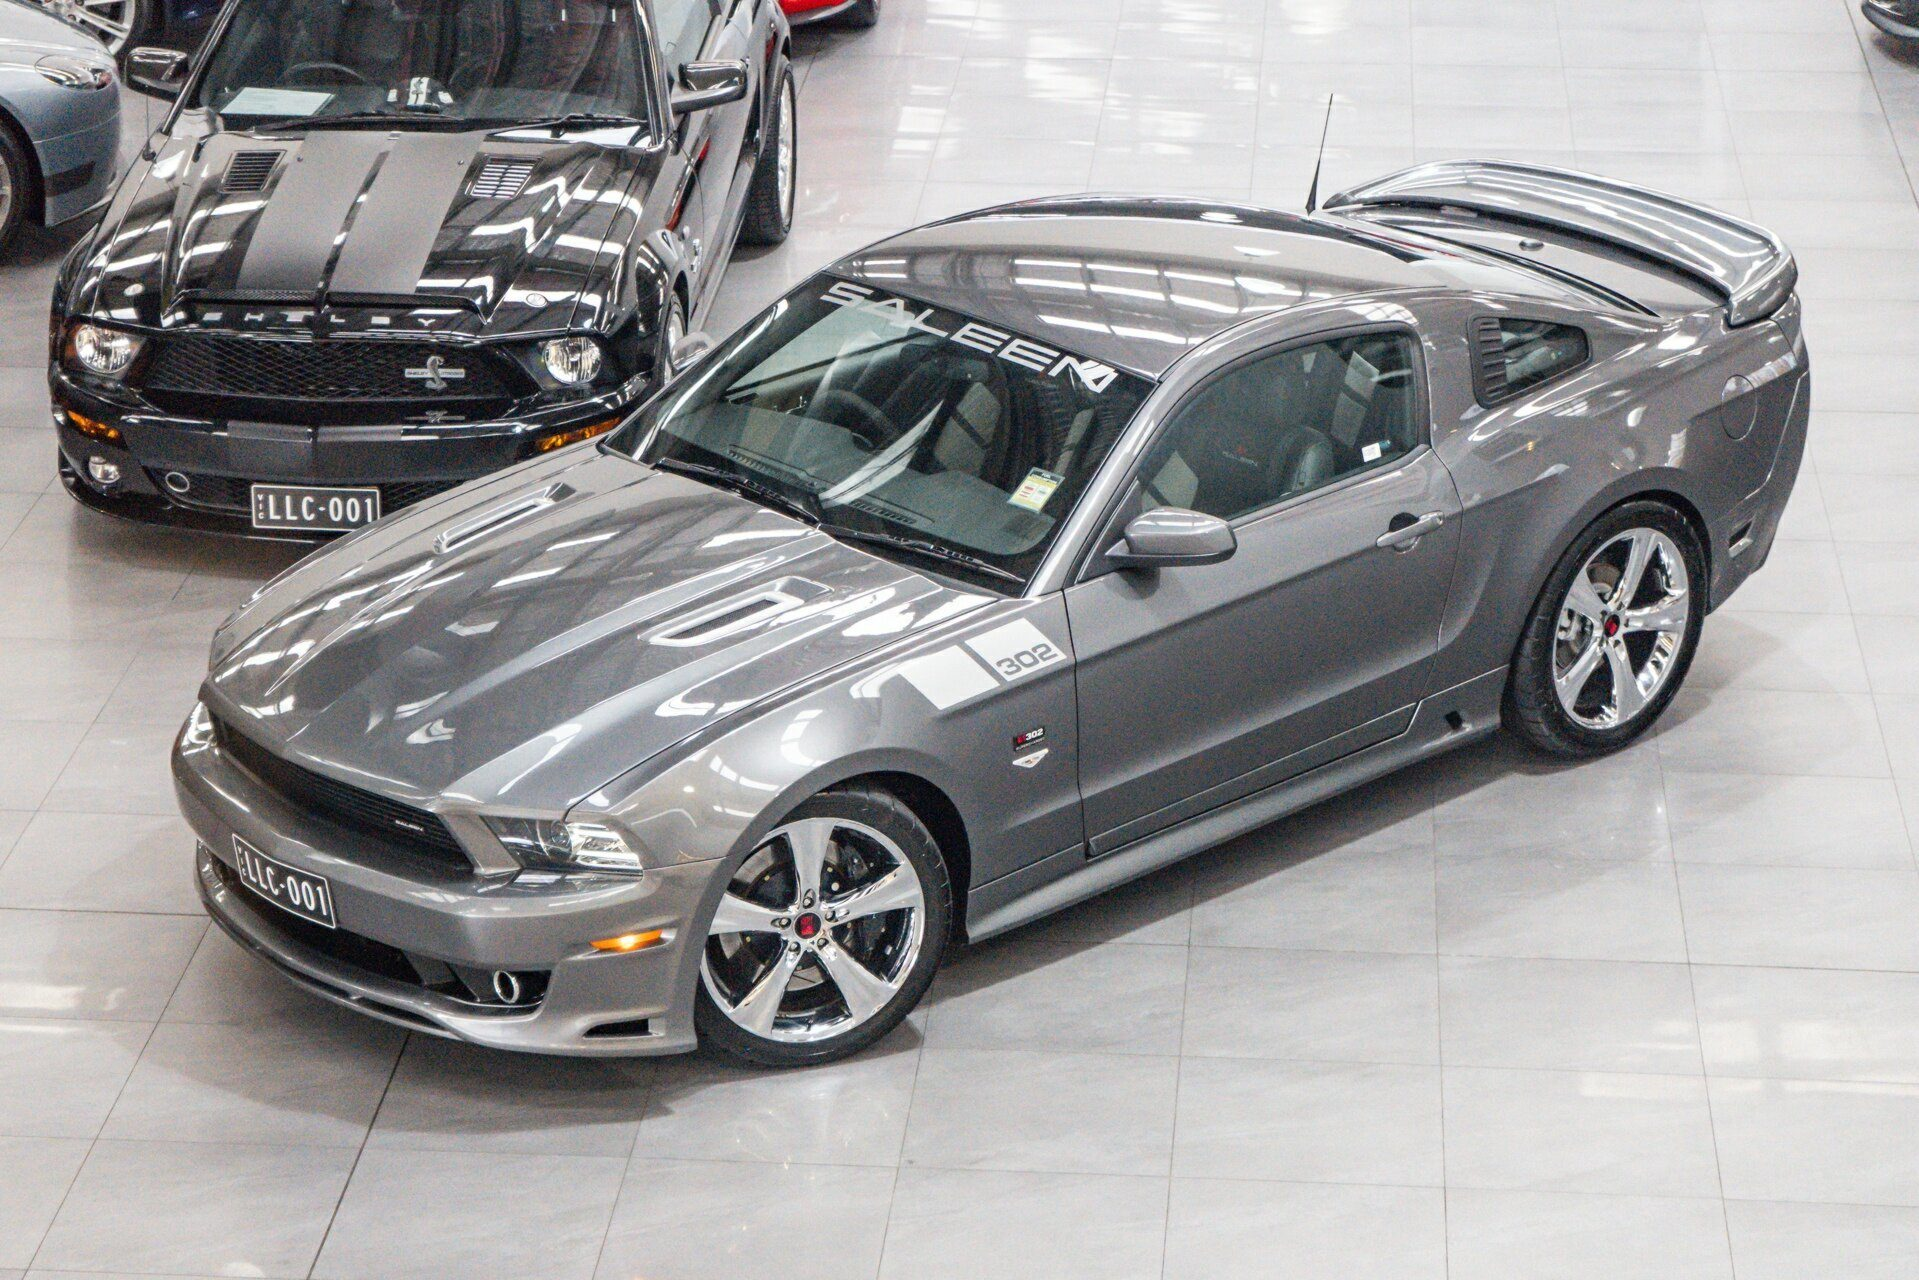 2013 Ford Mustang Saleen